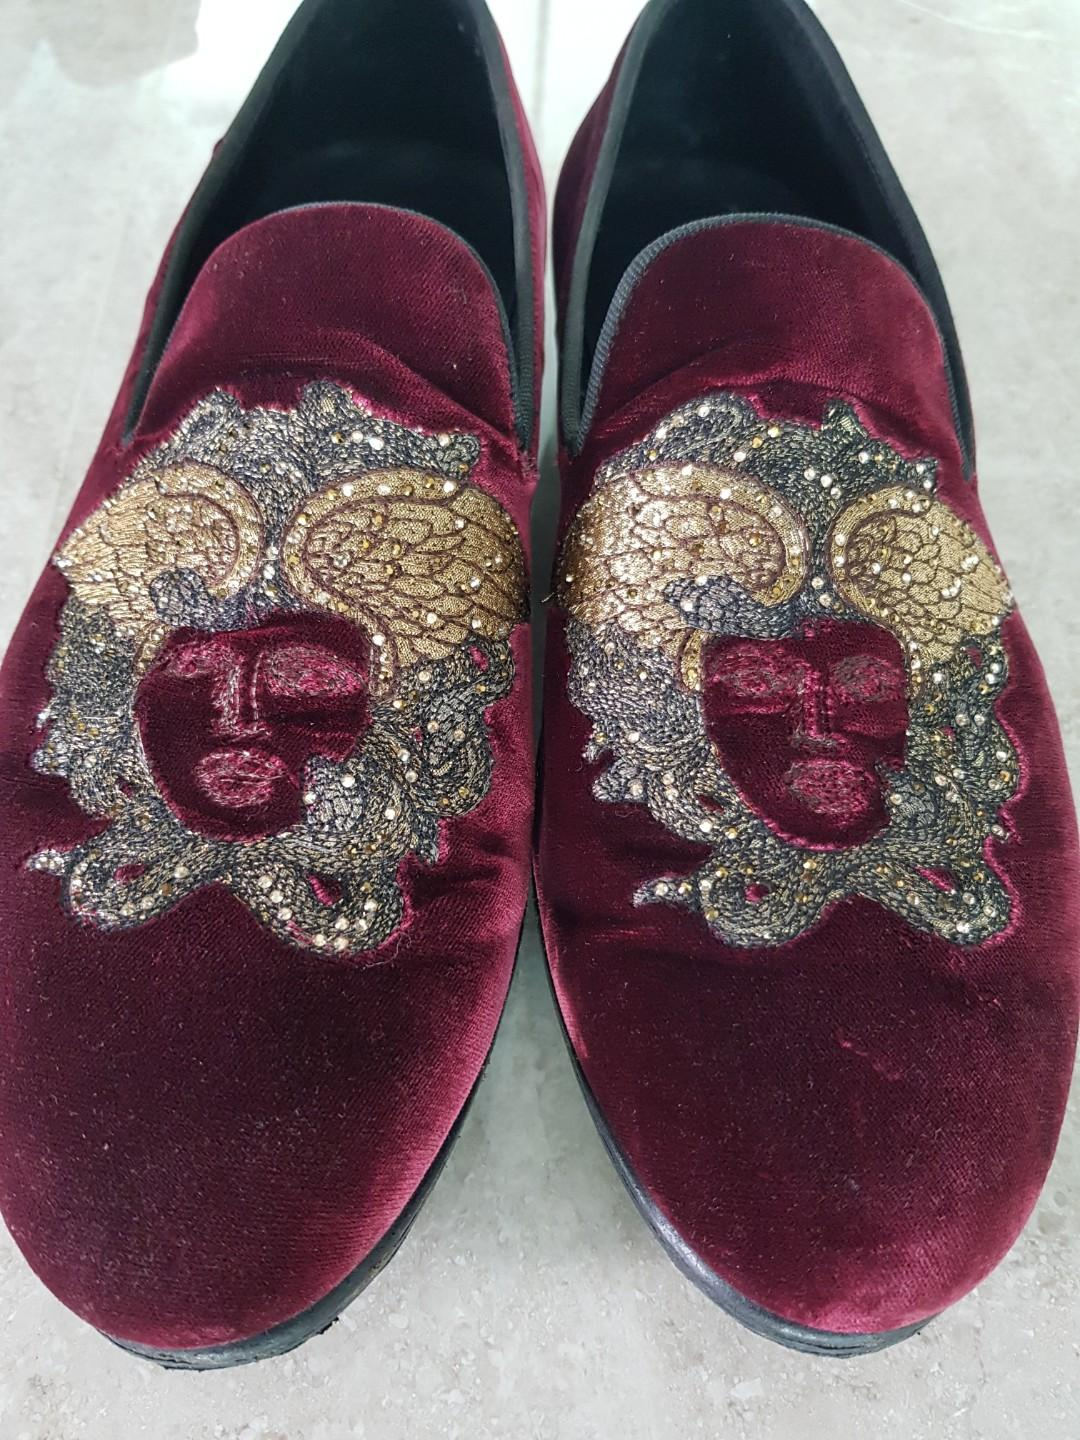 100% Authentic Versace Loafers Shoes cheapest on carousell. Steal. Promotion